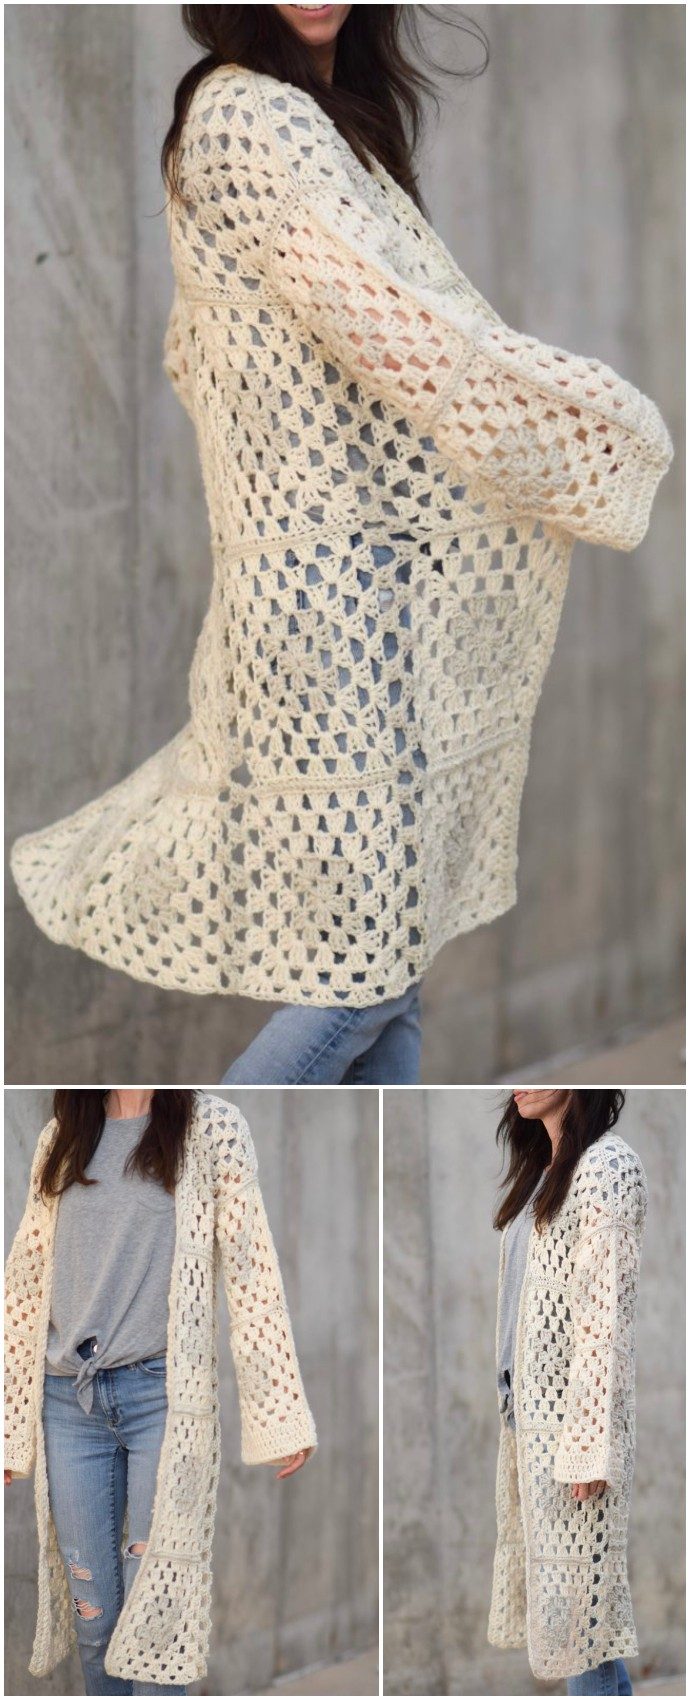 Arlo Granny Square Free Crocheted Cardigan